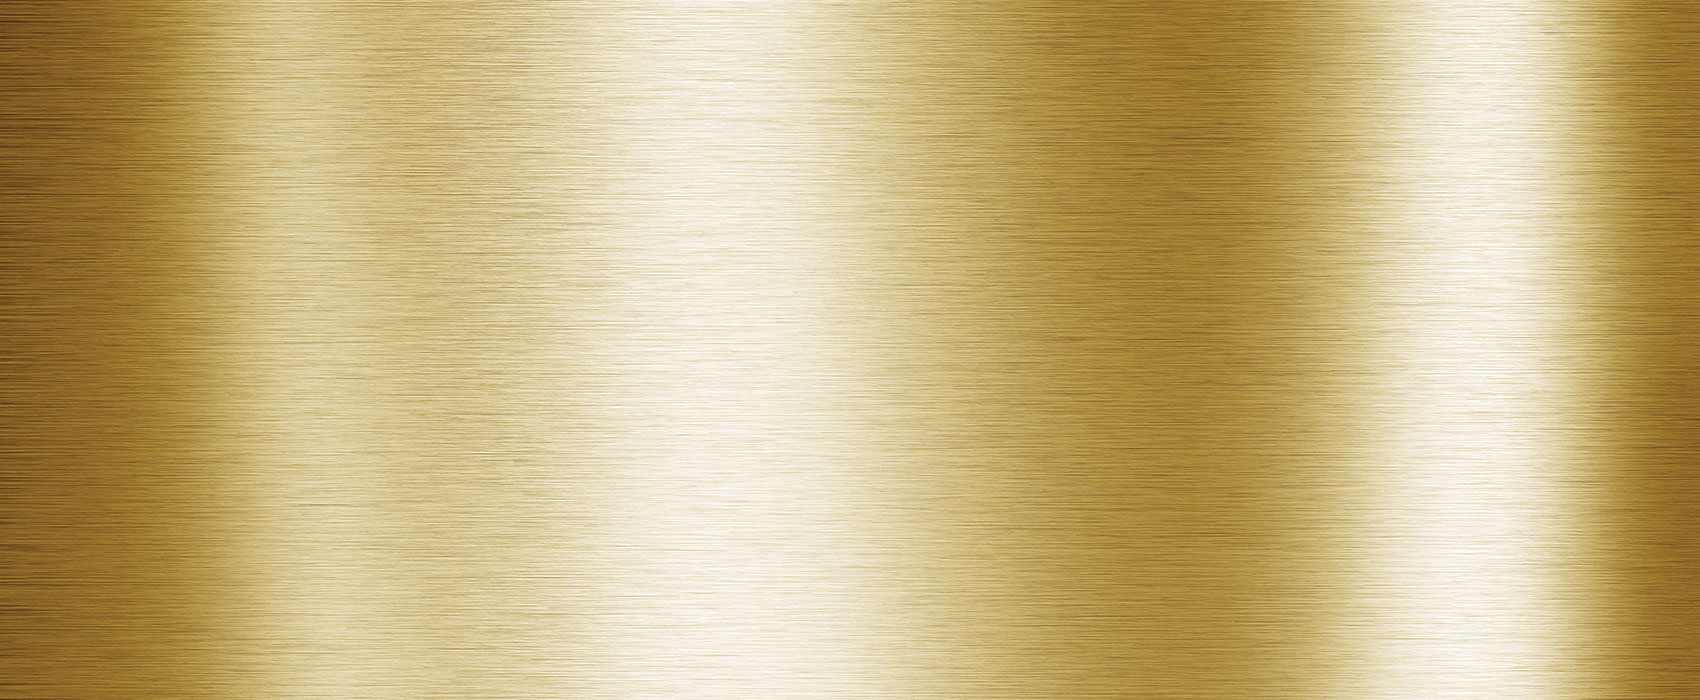 Gold Metal Texture Related Keywords & Suggestions  Gold